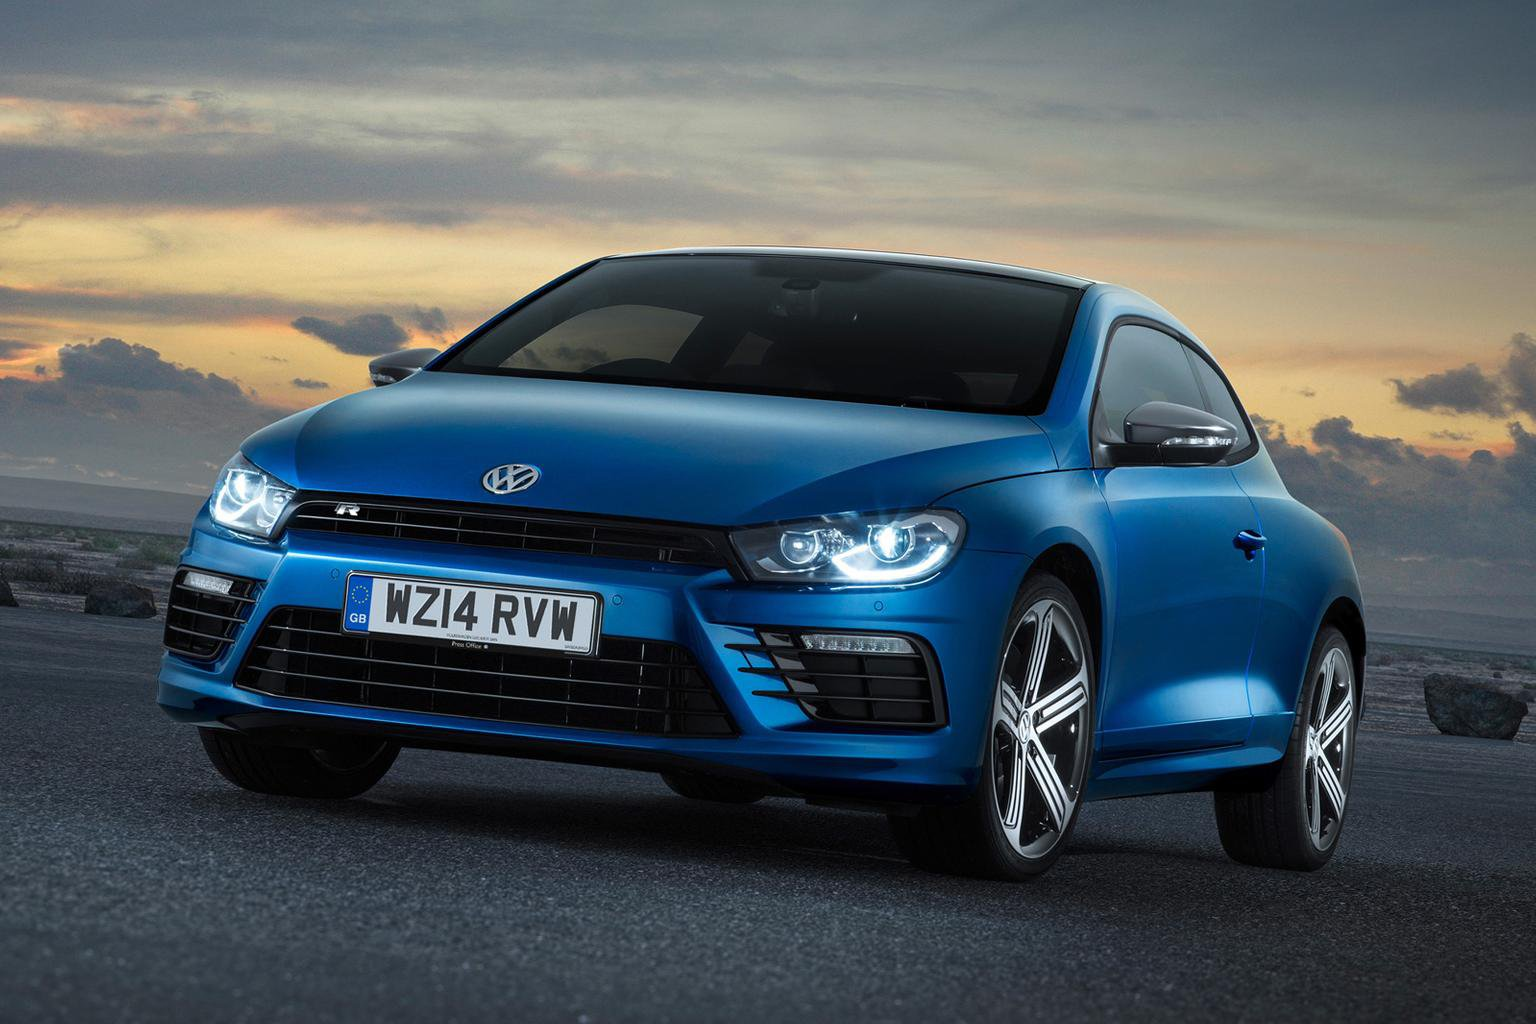 Deal of the day: Face-lifted Volkswagen Scirocco